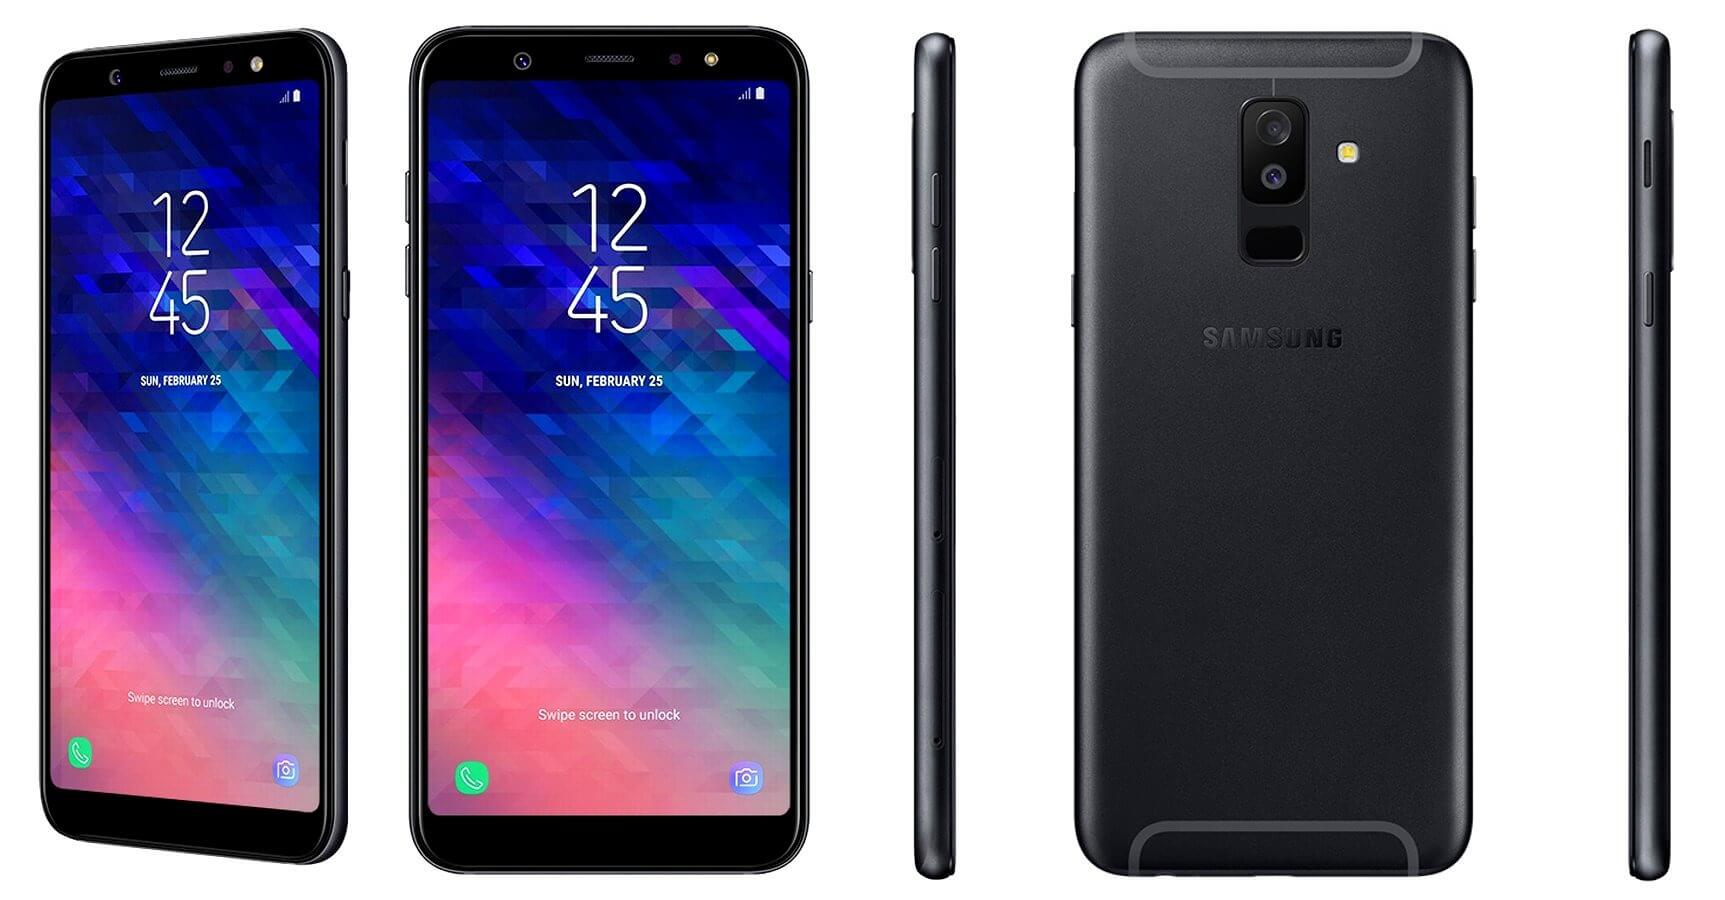 Samsung Galaxy A6 & Galaxy A6 Plus - Design, Specifications & Pricing 11